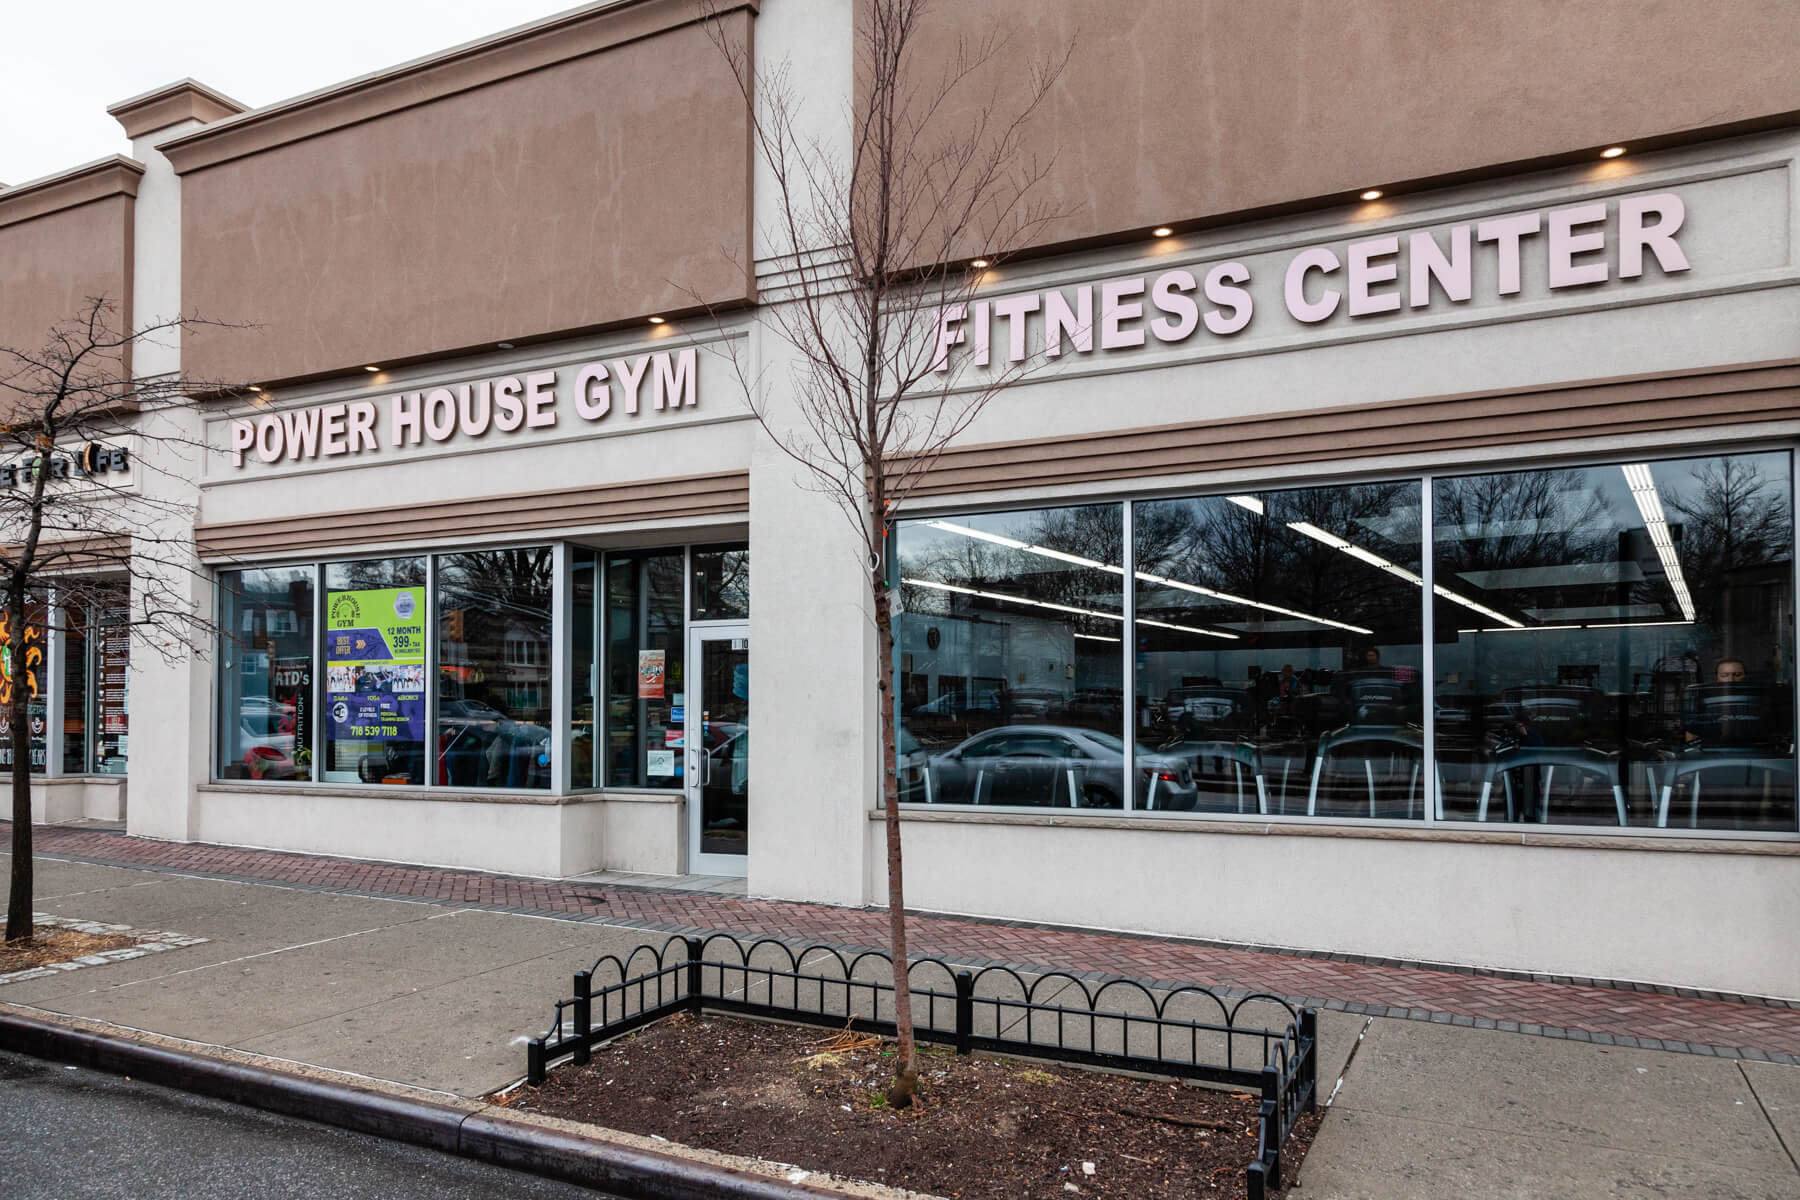 An Image of the Bayside, NY Powerhouse Gym Location